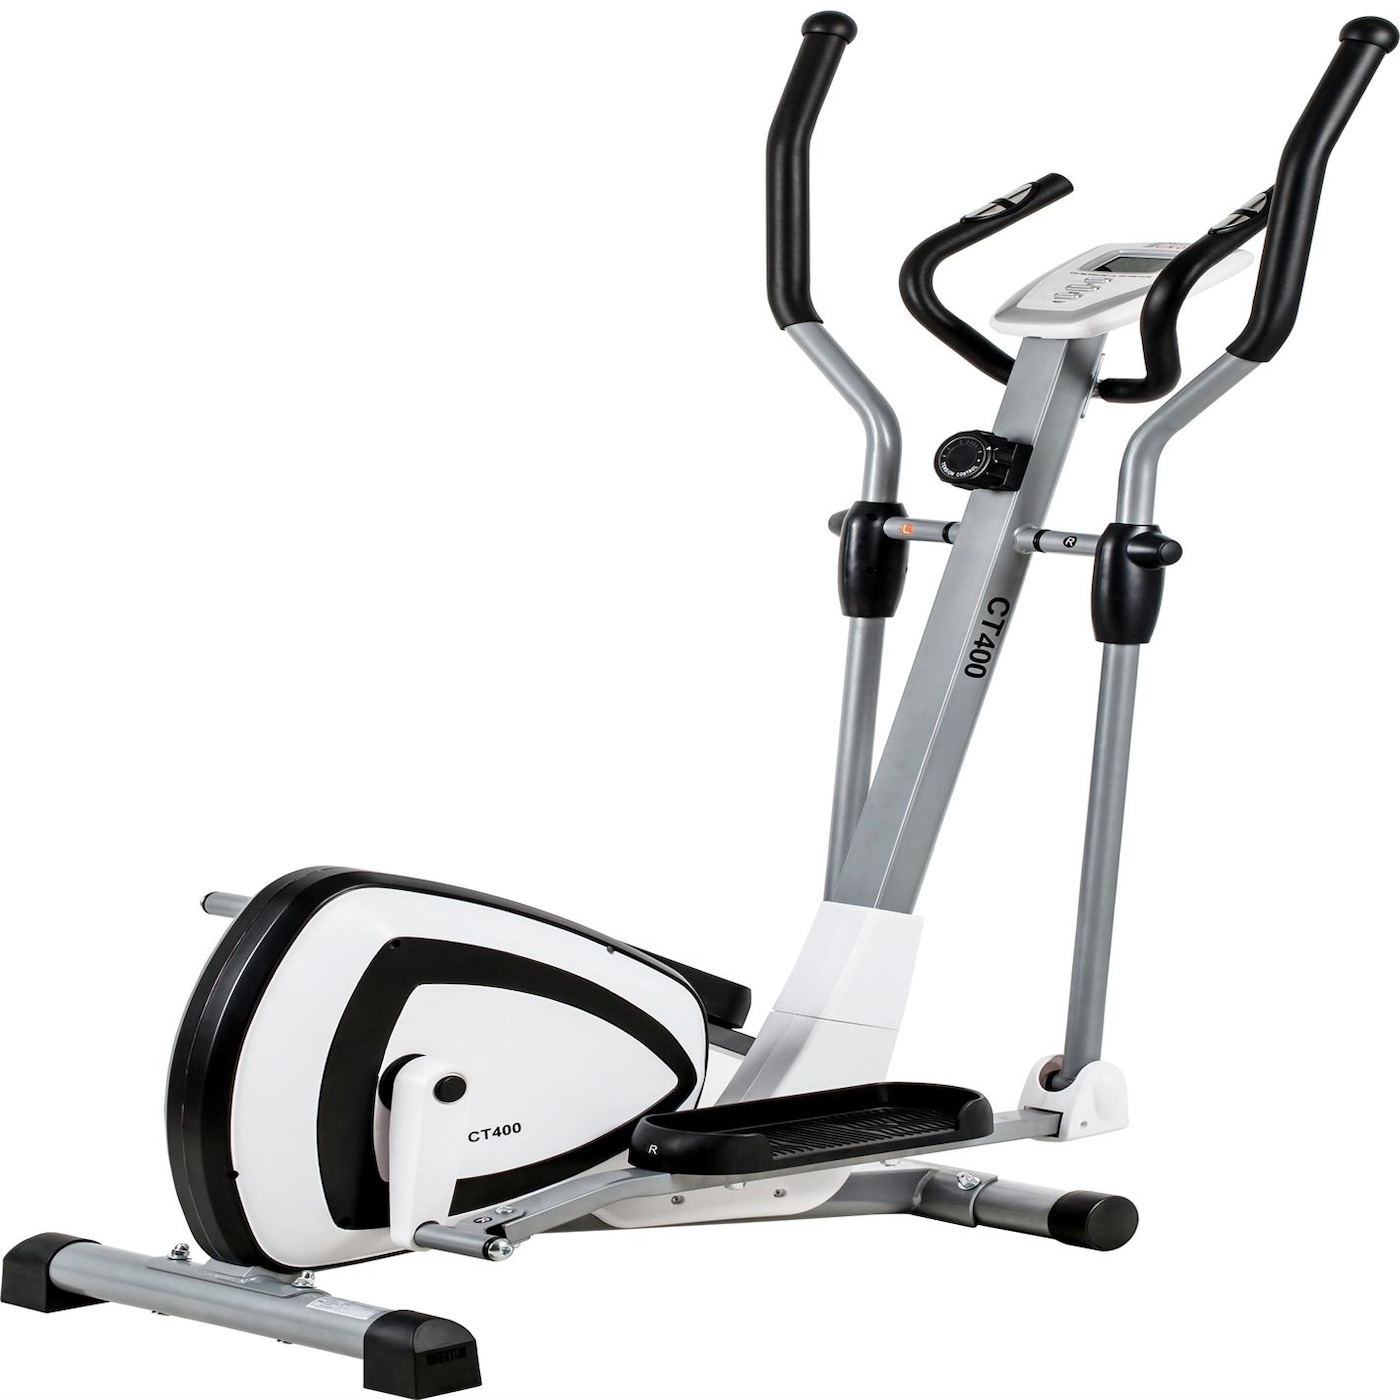 Motive Fitness Fitness CT400 Manual Magnetic Cross Trainer